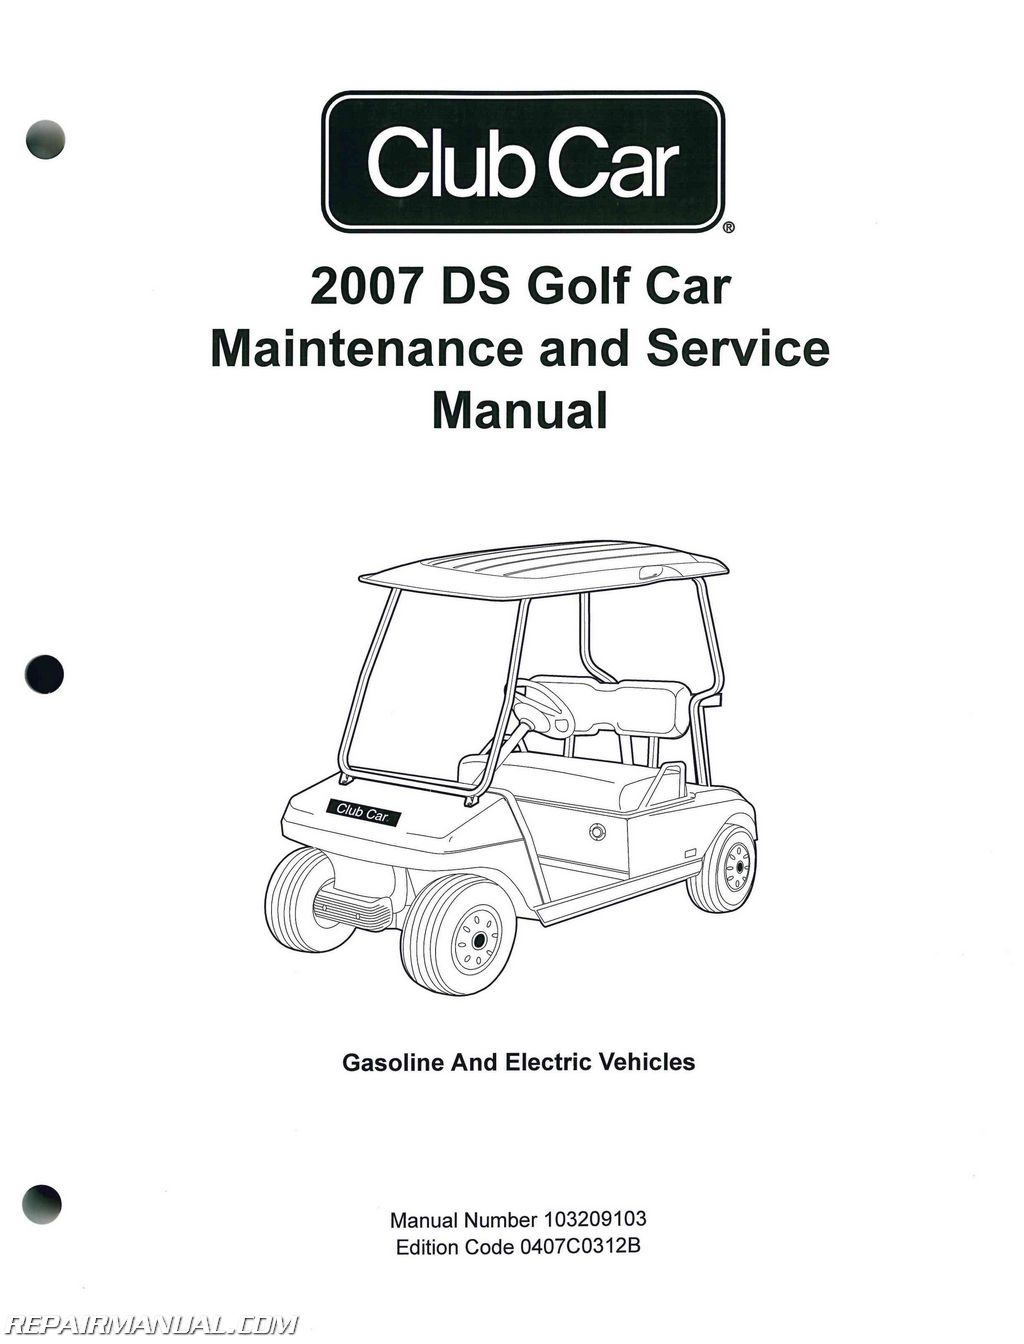 2007 Club Car DS Golf Car Gas And Electric Golf Cart Service Manual gas club car wiring diagrams readingrat net gas club car ignition switch wiring diagram at nearapp.co